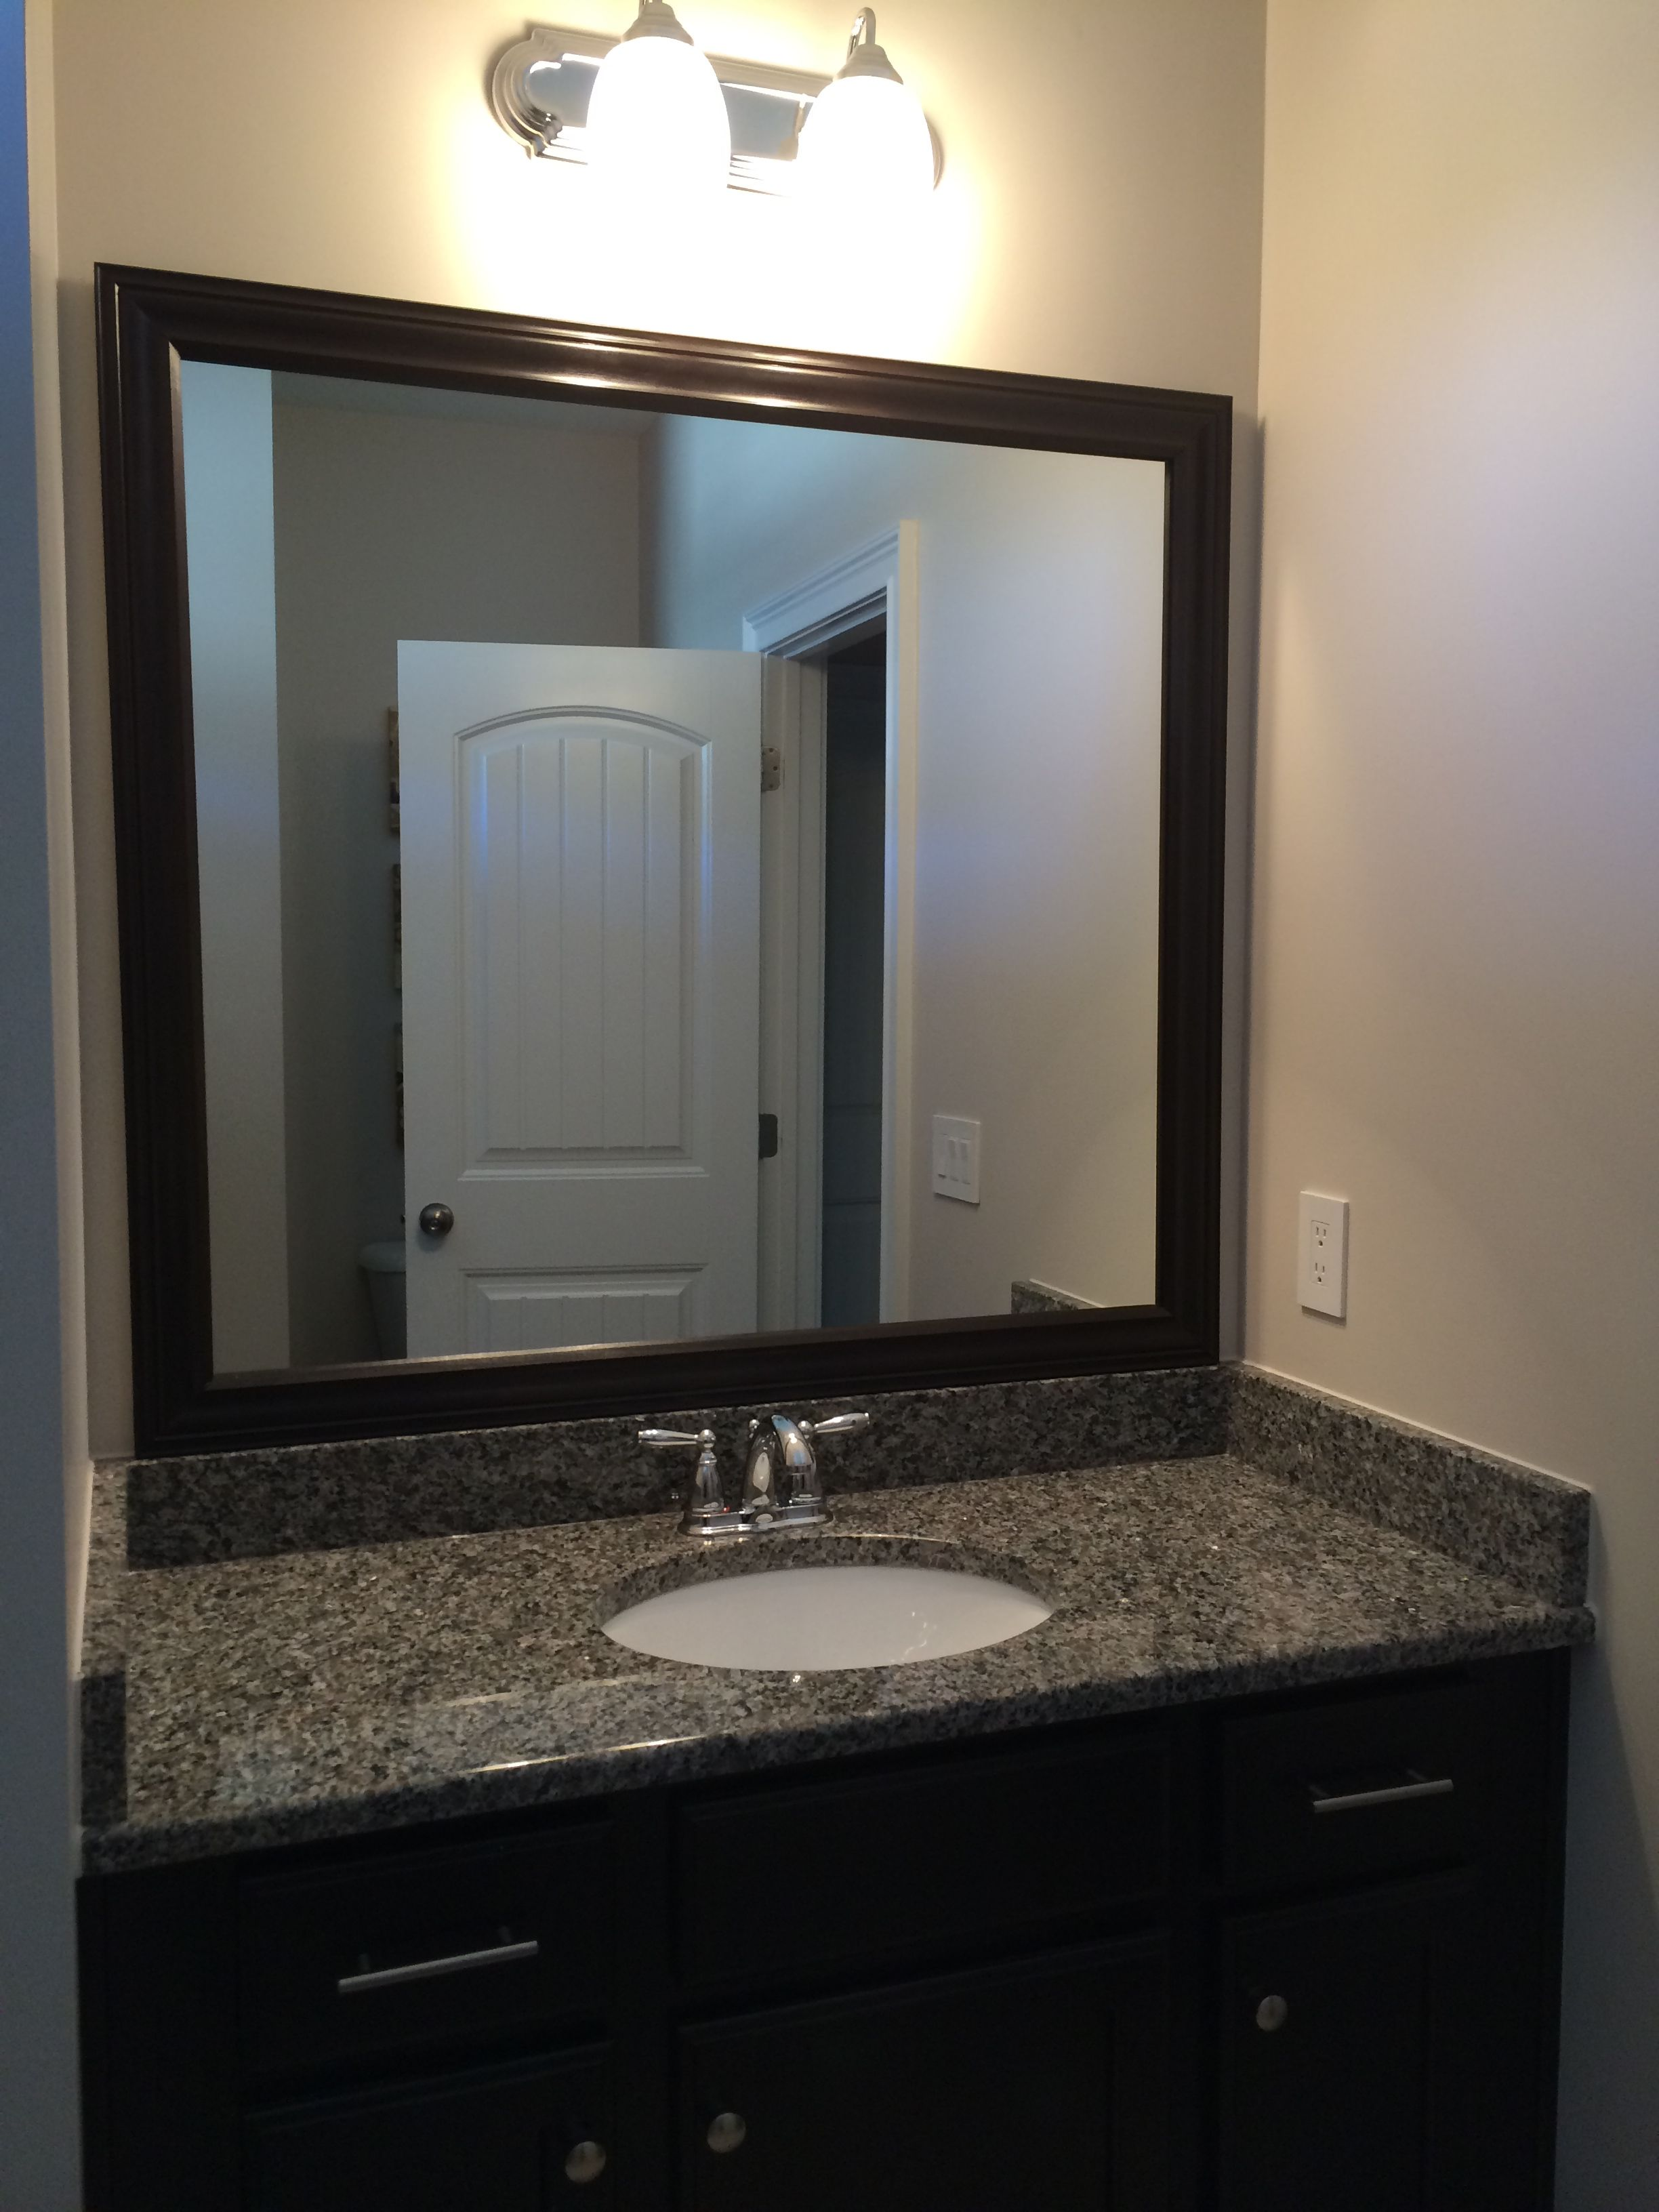 Diy Framed Mirror We Used Double Sided Tape To Mount Frame Existing Plate Gl Built The Using Wood Trim Chose Stain Our